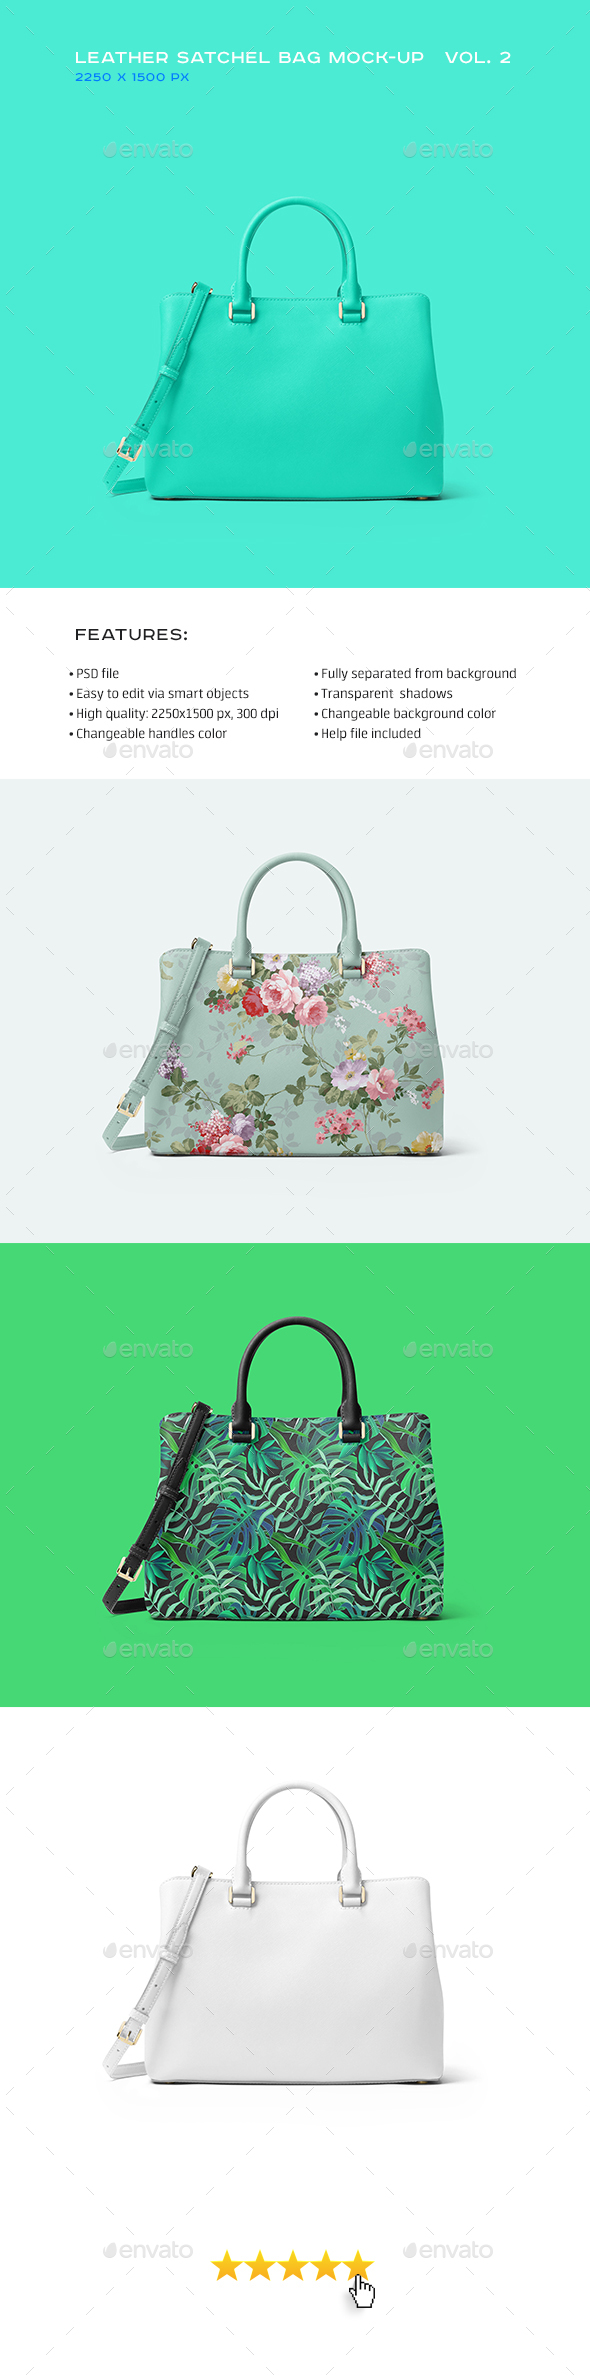 Leather Satchel Bag Mock-up vol.2 - Miscellaneous Print